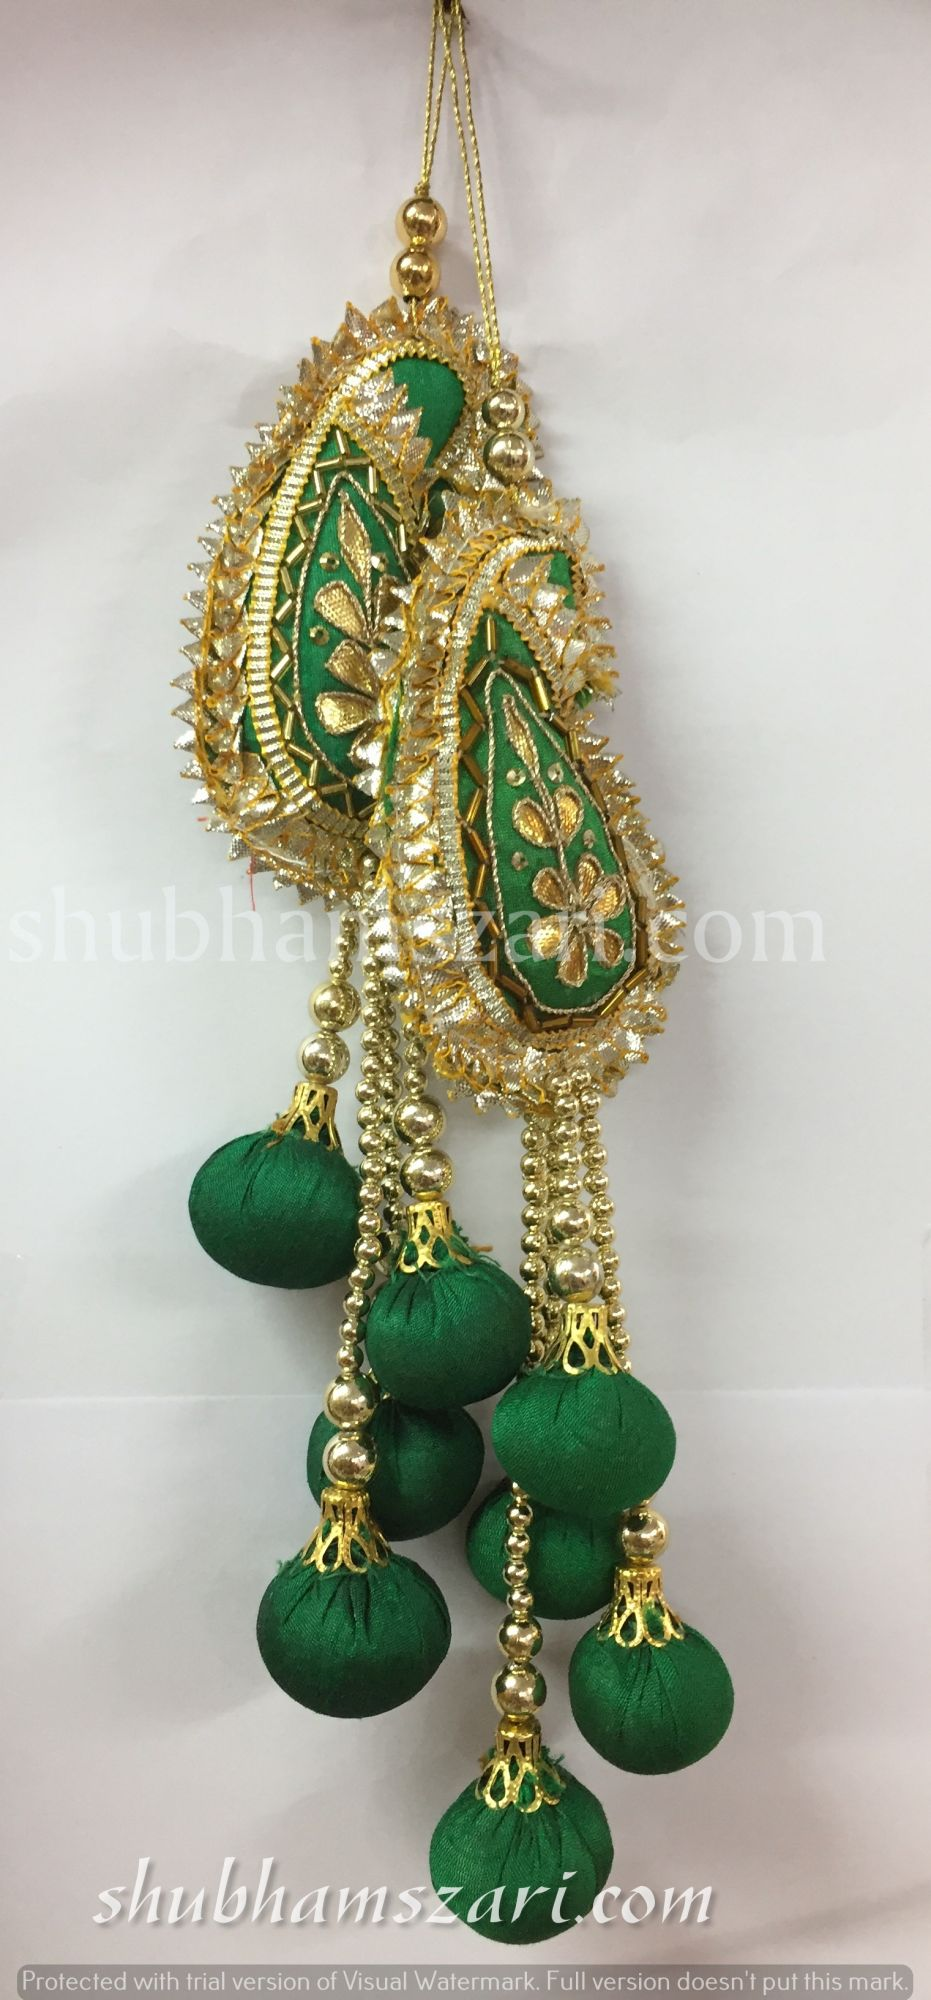 Shubhams green colour kary(mango) shape gota patti work Latkan For embellish saris Blouse lehengas and kurtie